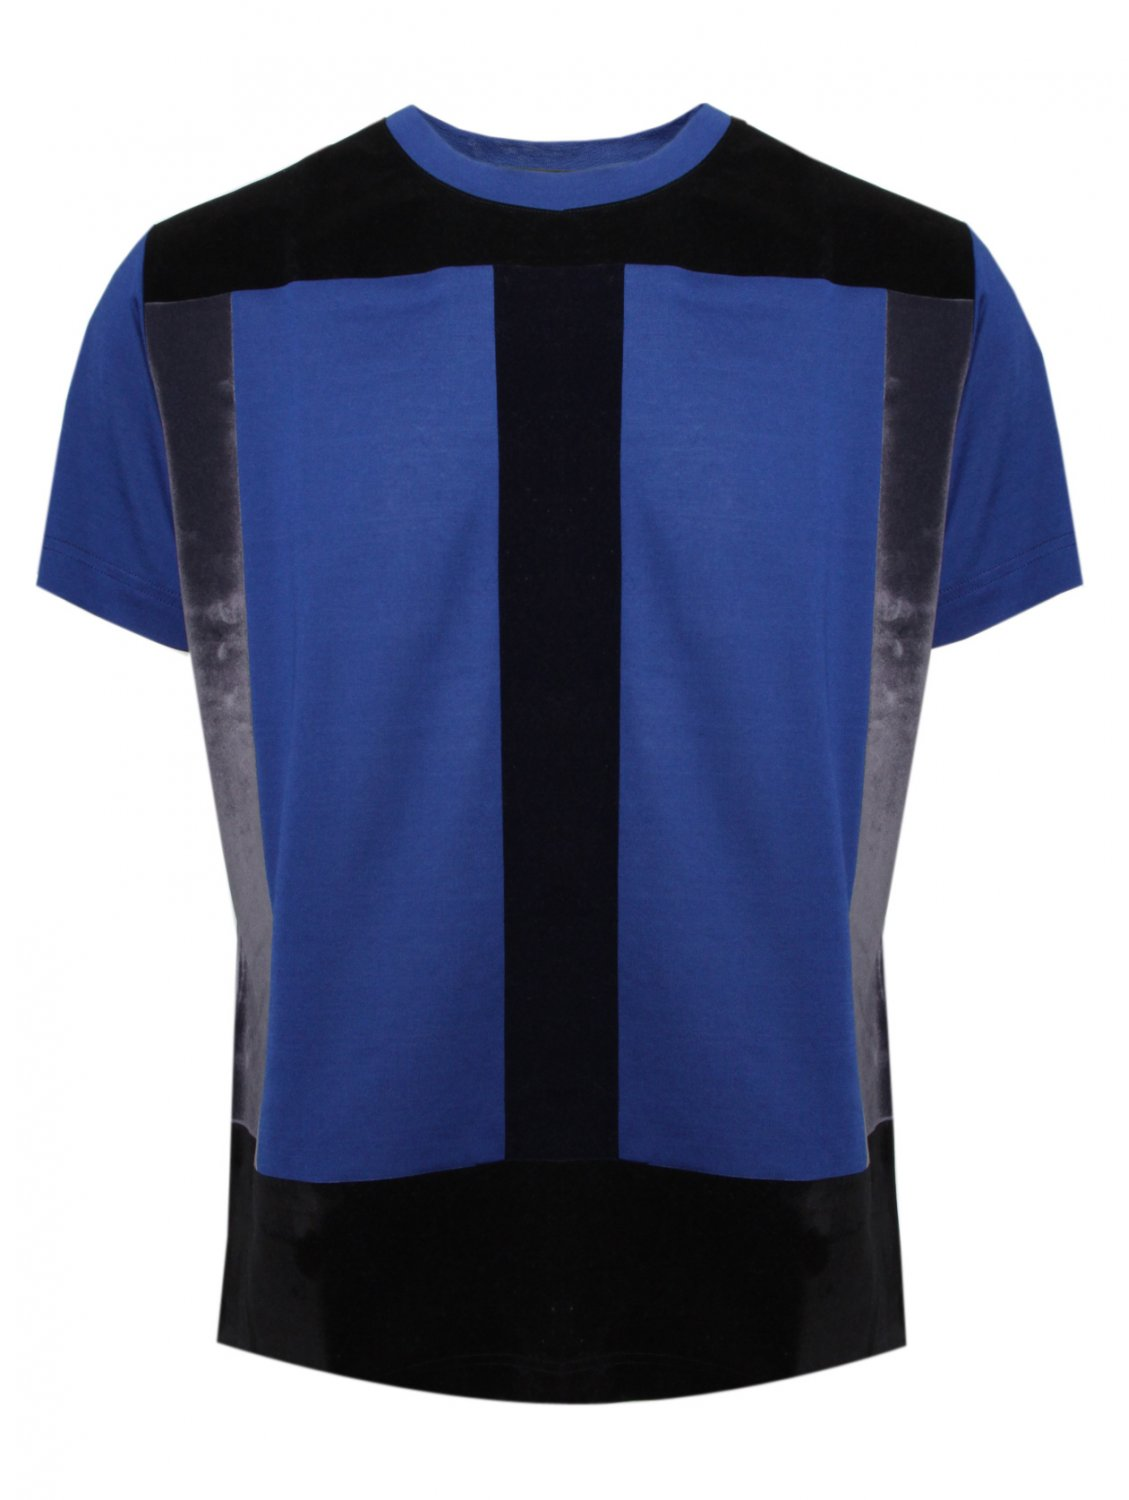 00o00 blog menswear Christopher Kane Flock colour block tshirt oki-ni fall winter 2012